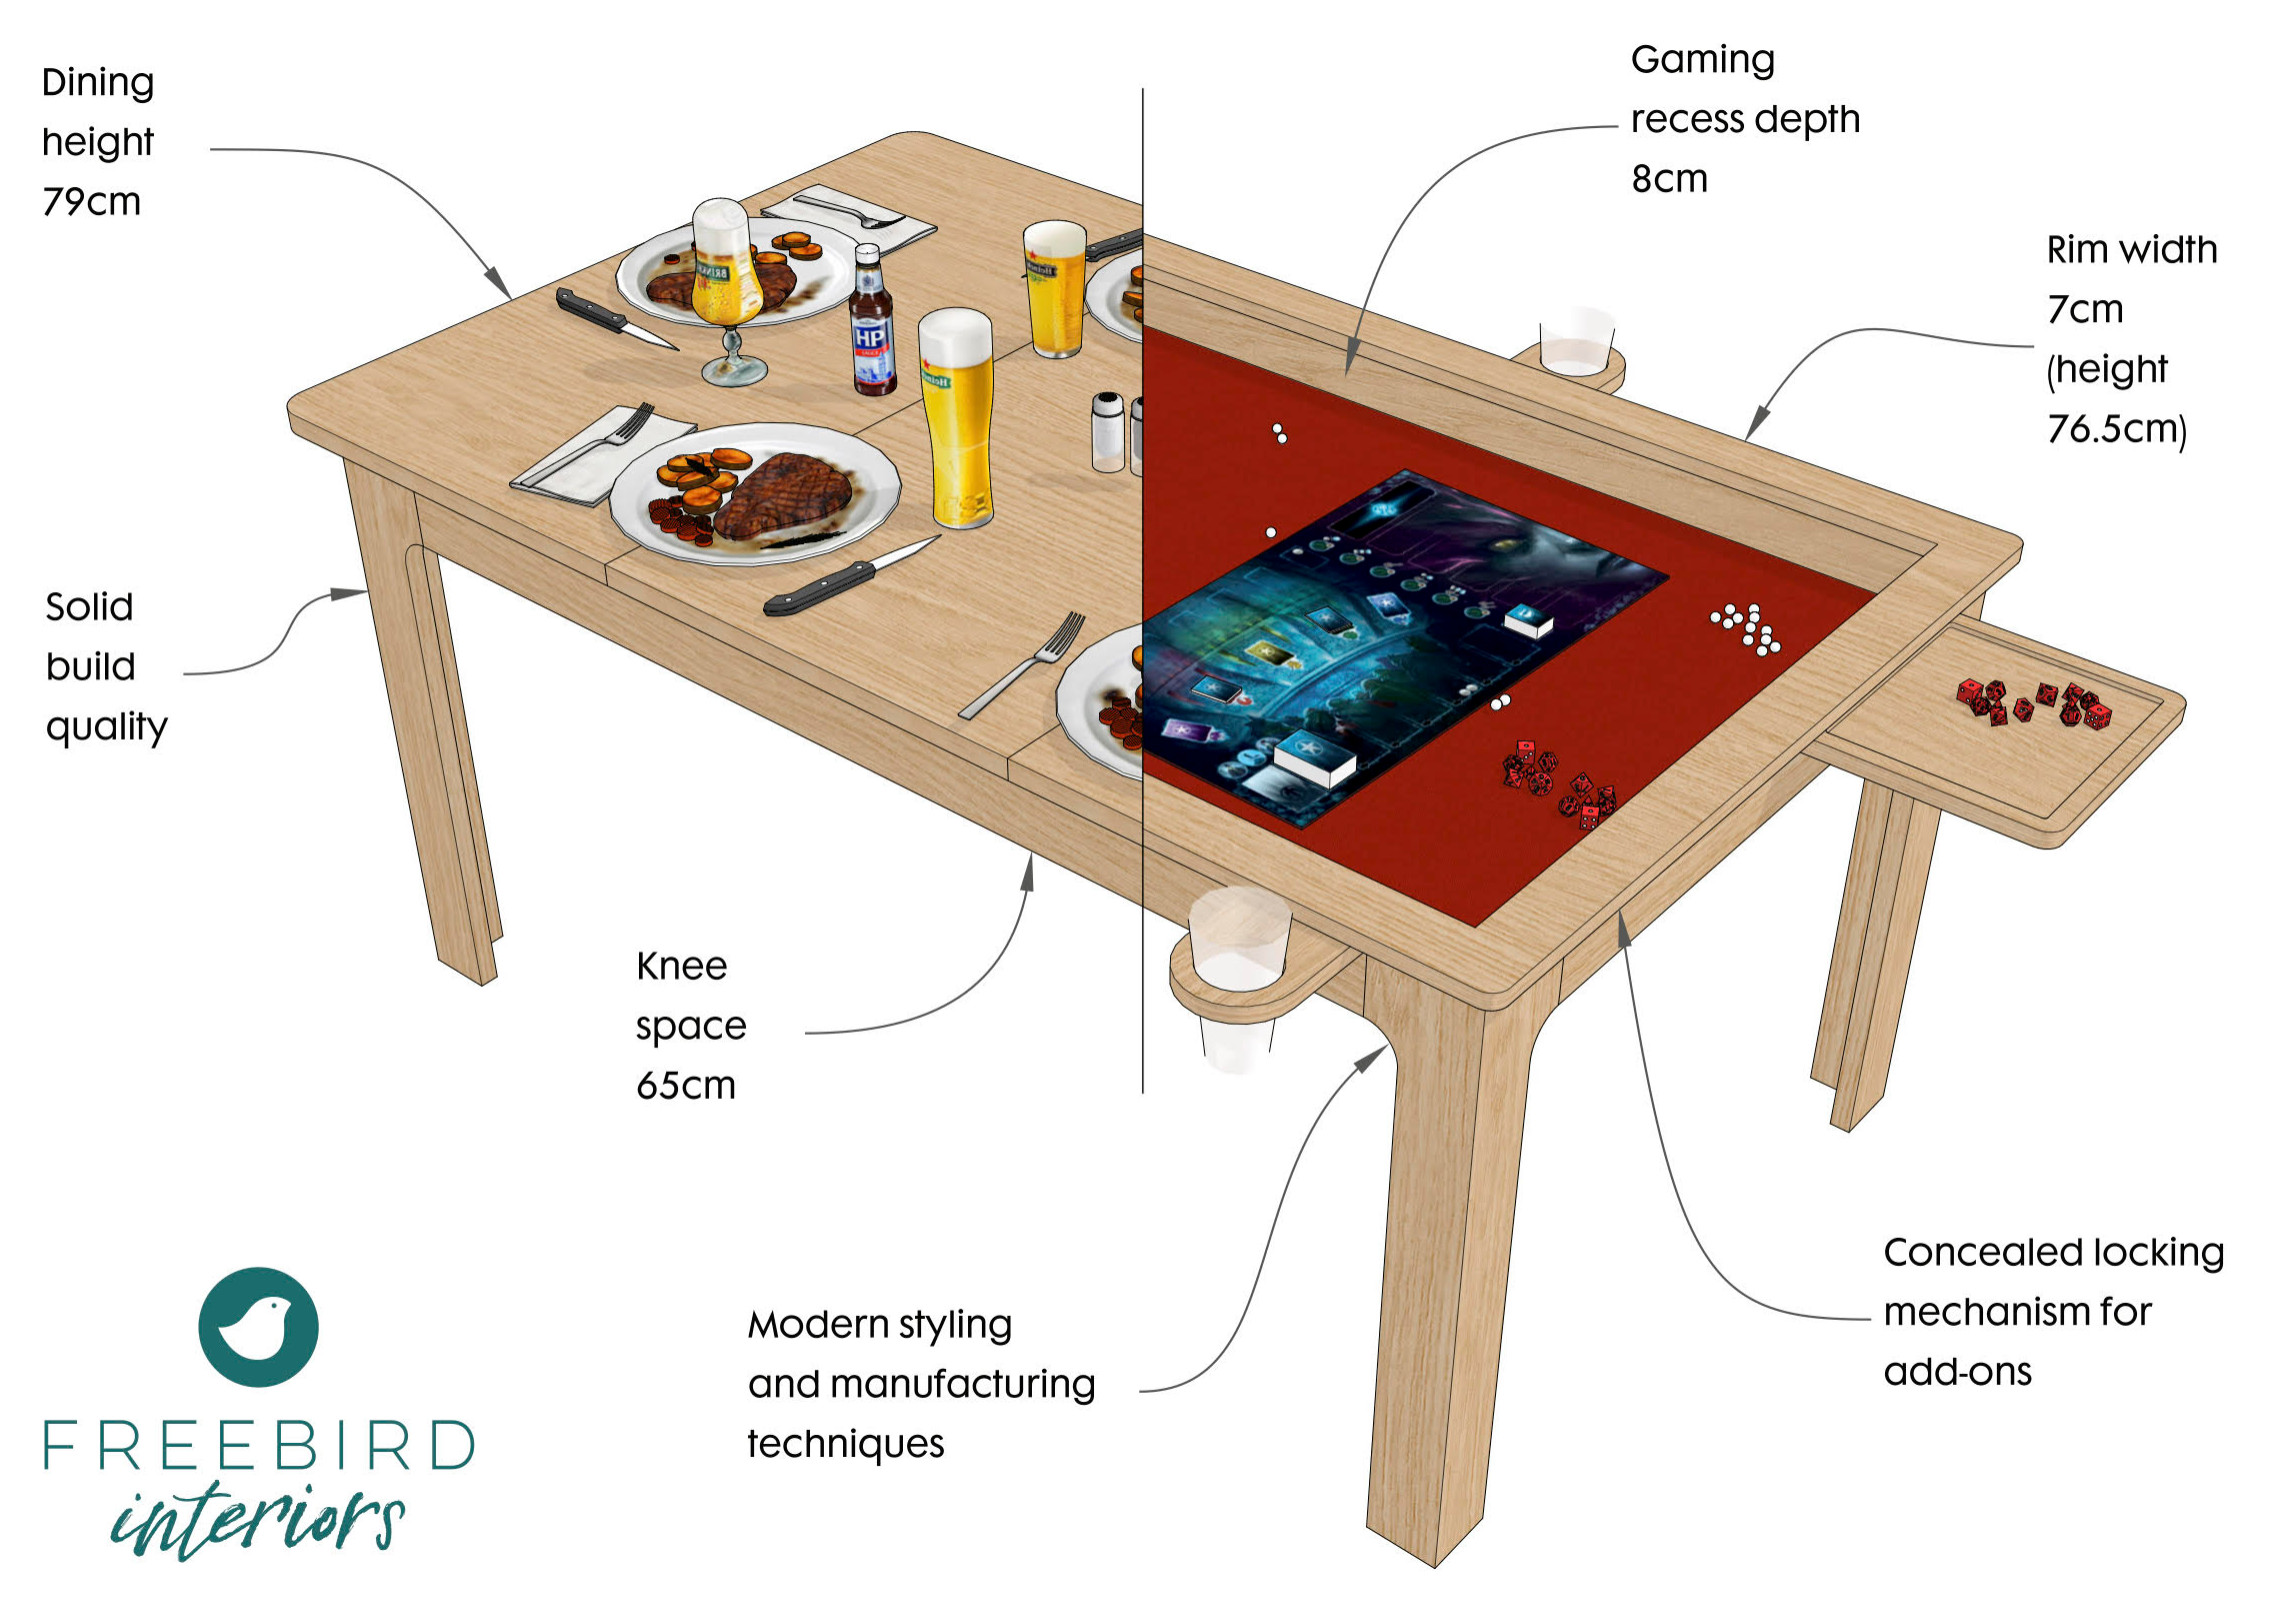 The Freebird Gaming Table